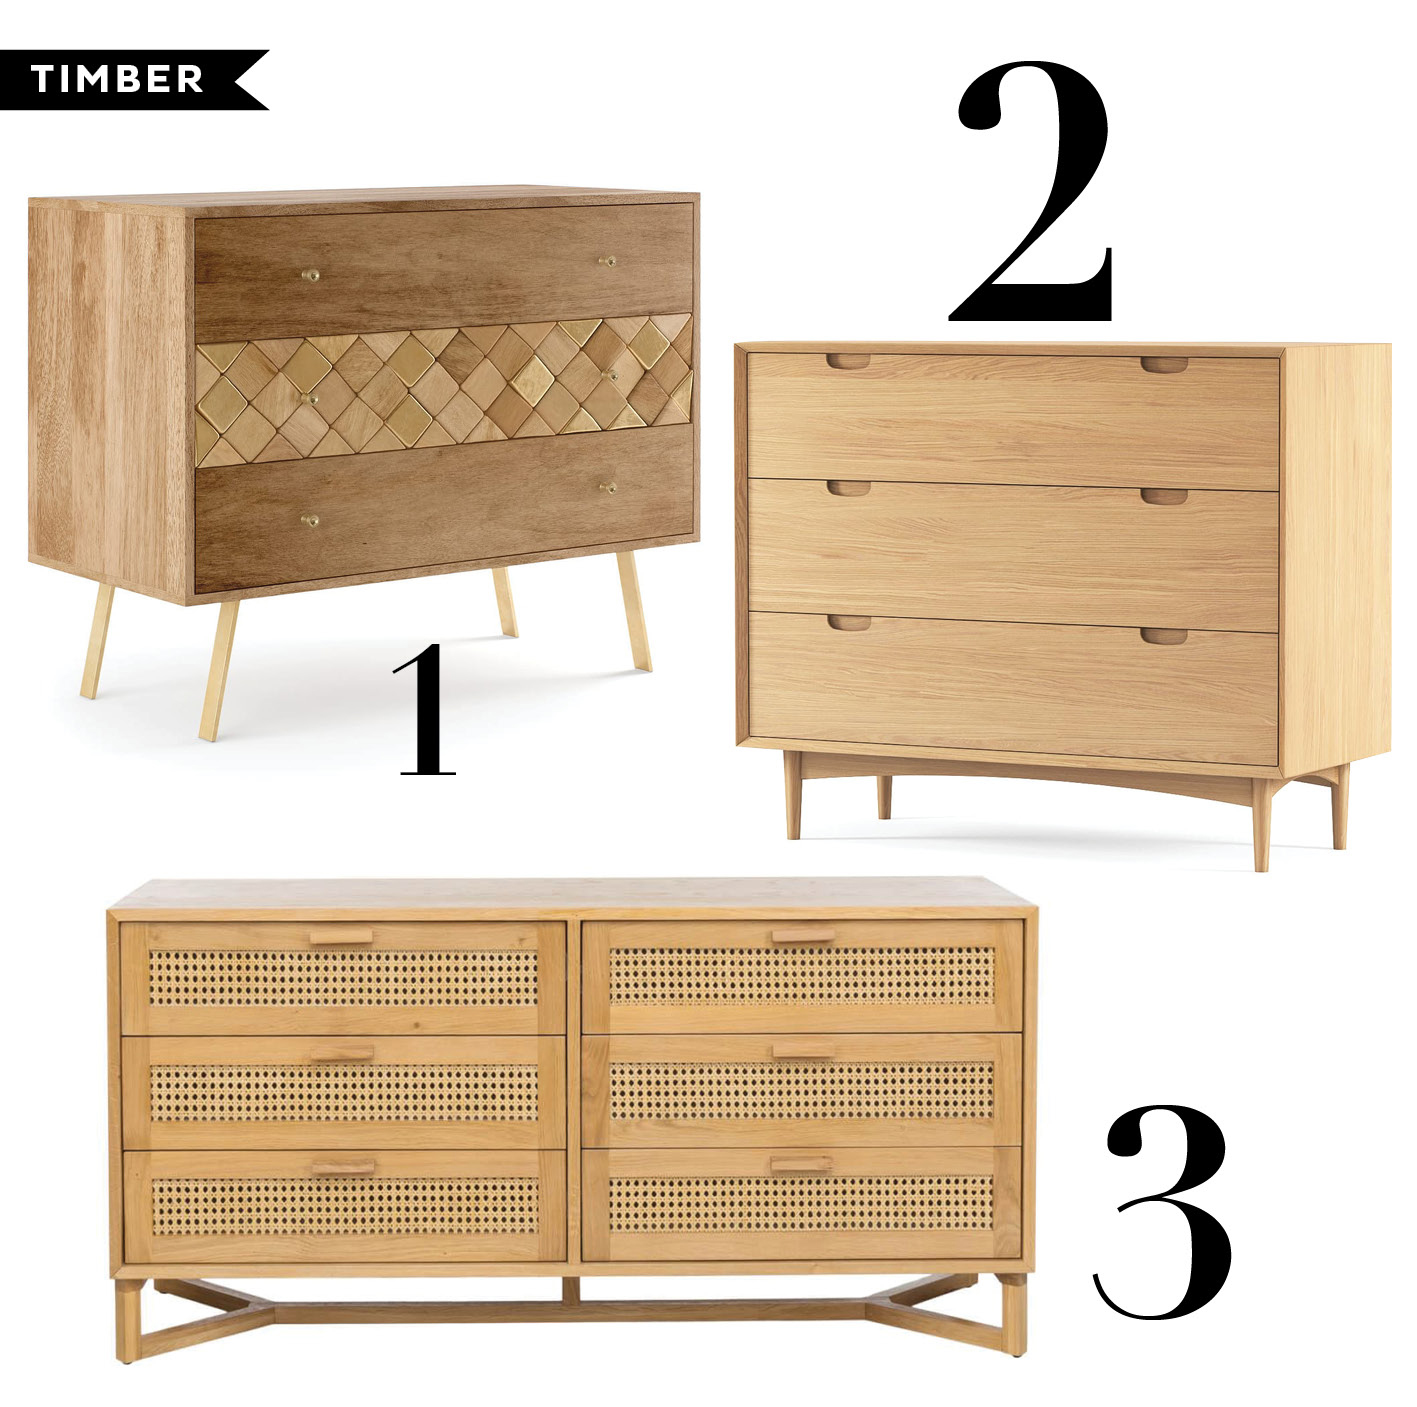 adore_home_timber_drawers_chest_storage_bedroom.jpg